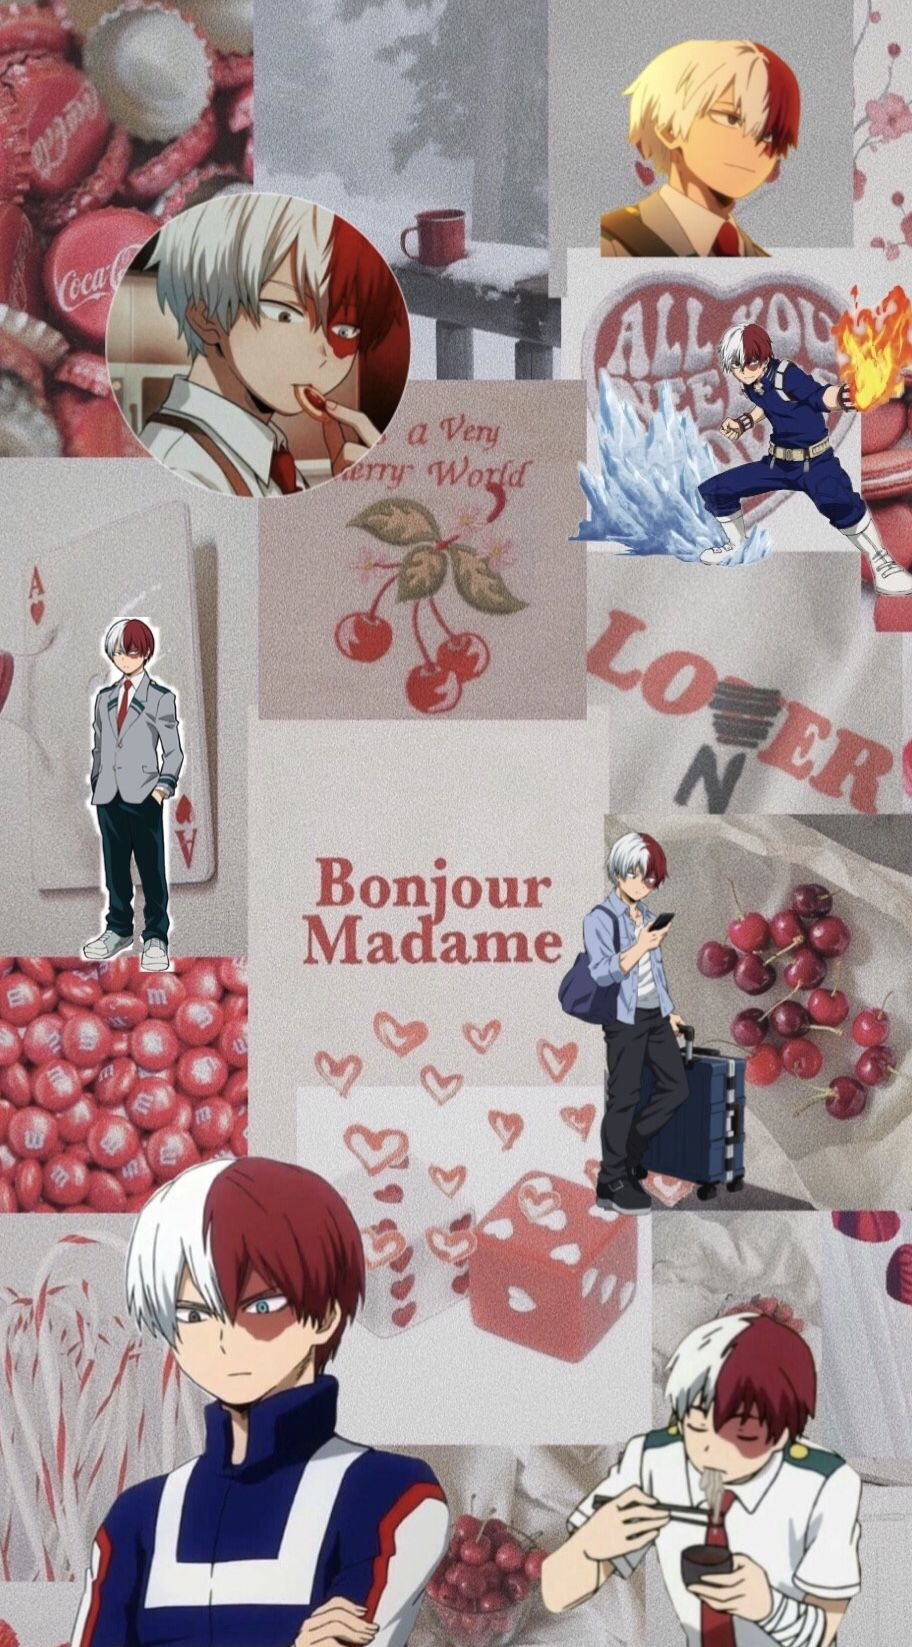 Todoroki Aesthetic Wallpaper Cute Anime Wallpaper Cute Wallpapers Red And White Wallpaper